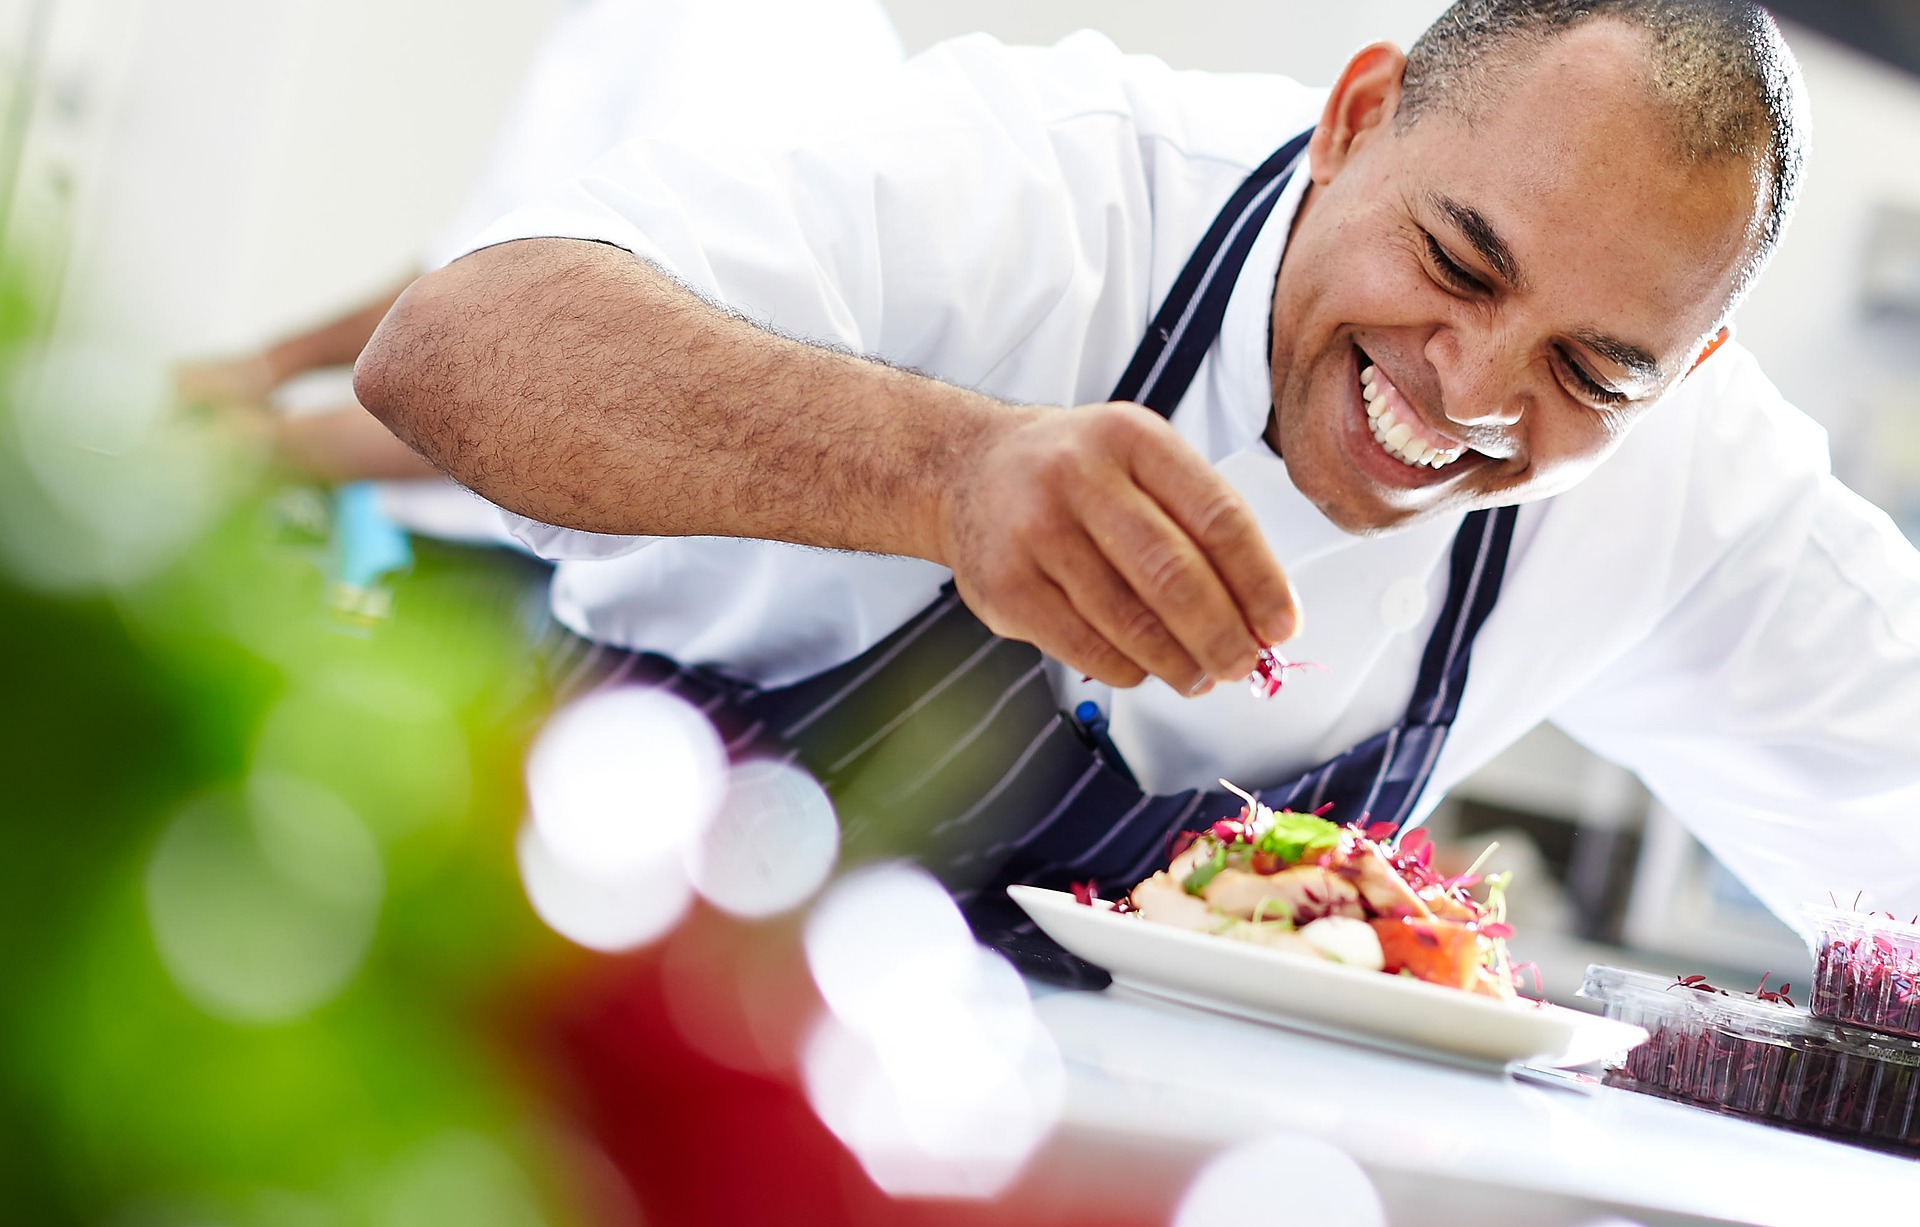 Male chef smiling as he puts the finishing touches on a dish